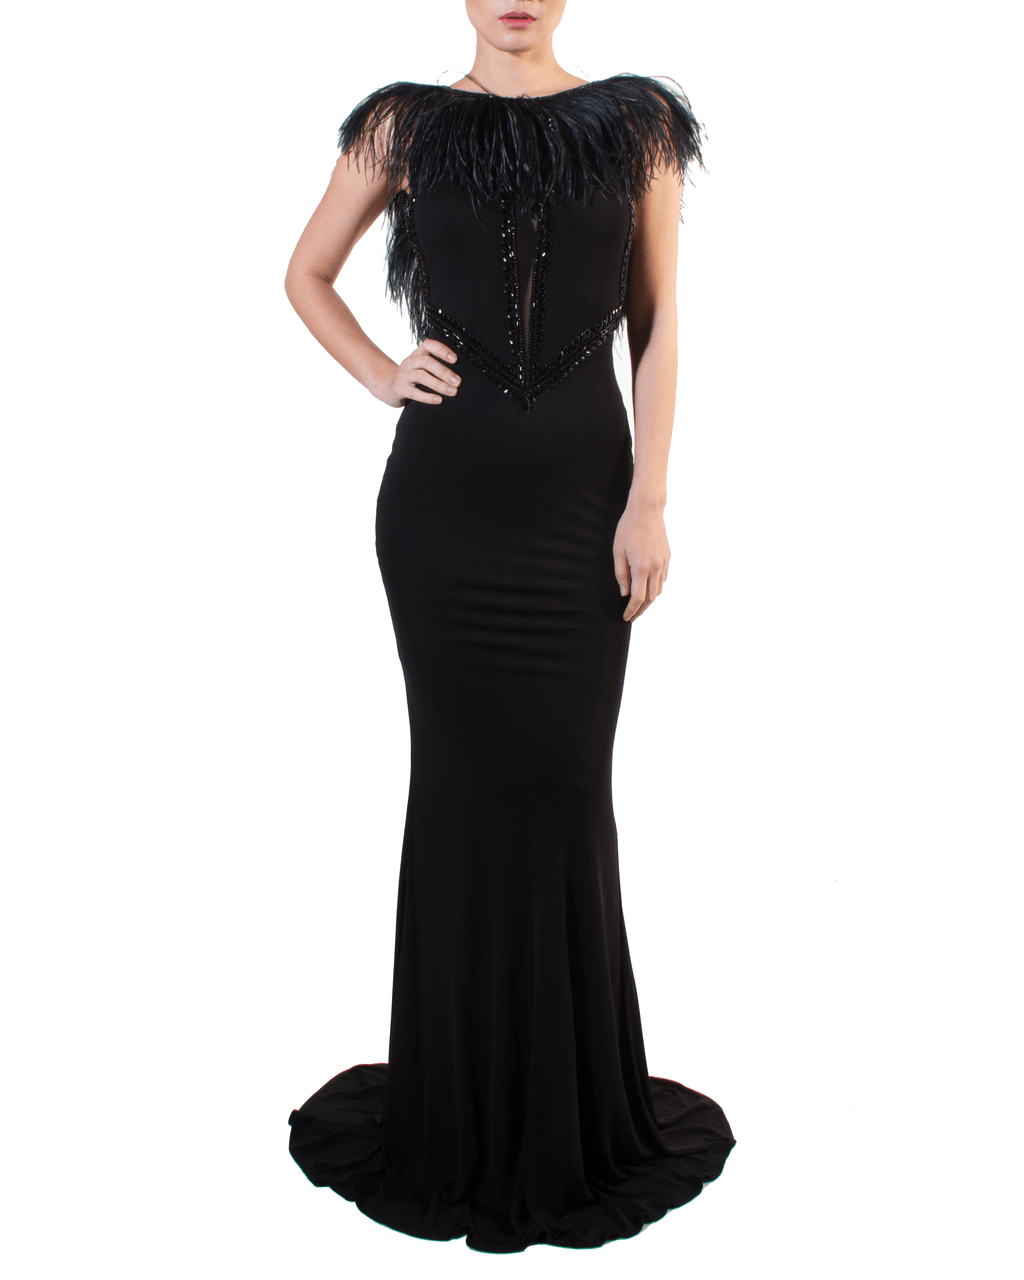 V-Back Jeweled Feather Tail Gown by Espen Salberg - Rent or Buy It at Covetella